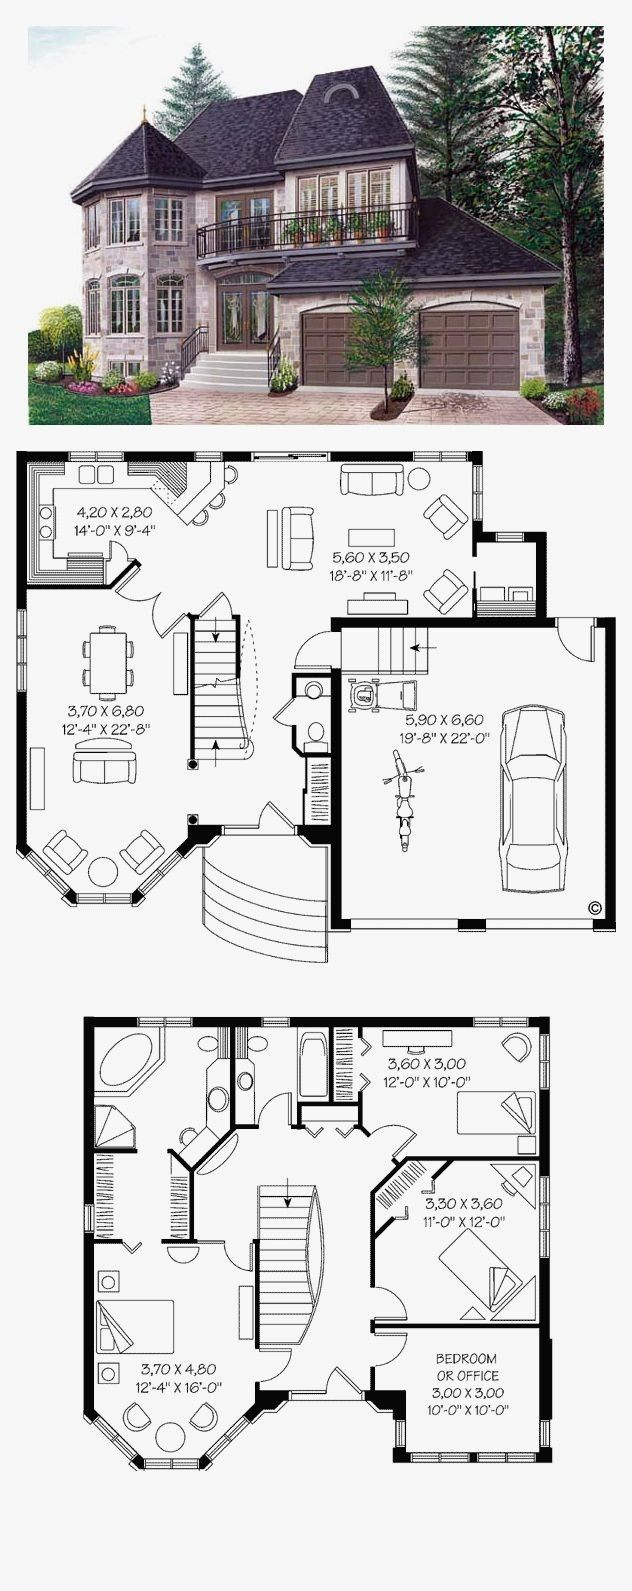 Victorian Style House Plan 57563 With 5 Bed 7 Bath 2 Car Garage Victorian House Plans House Blueprints House Layouts